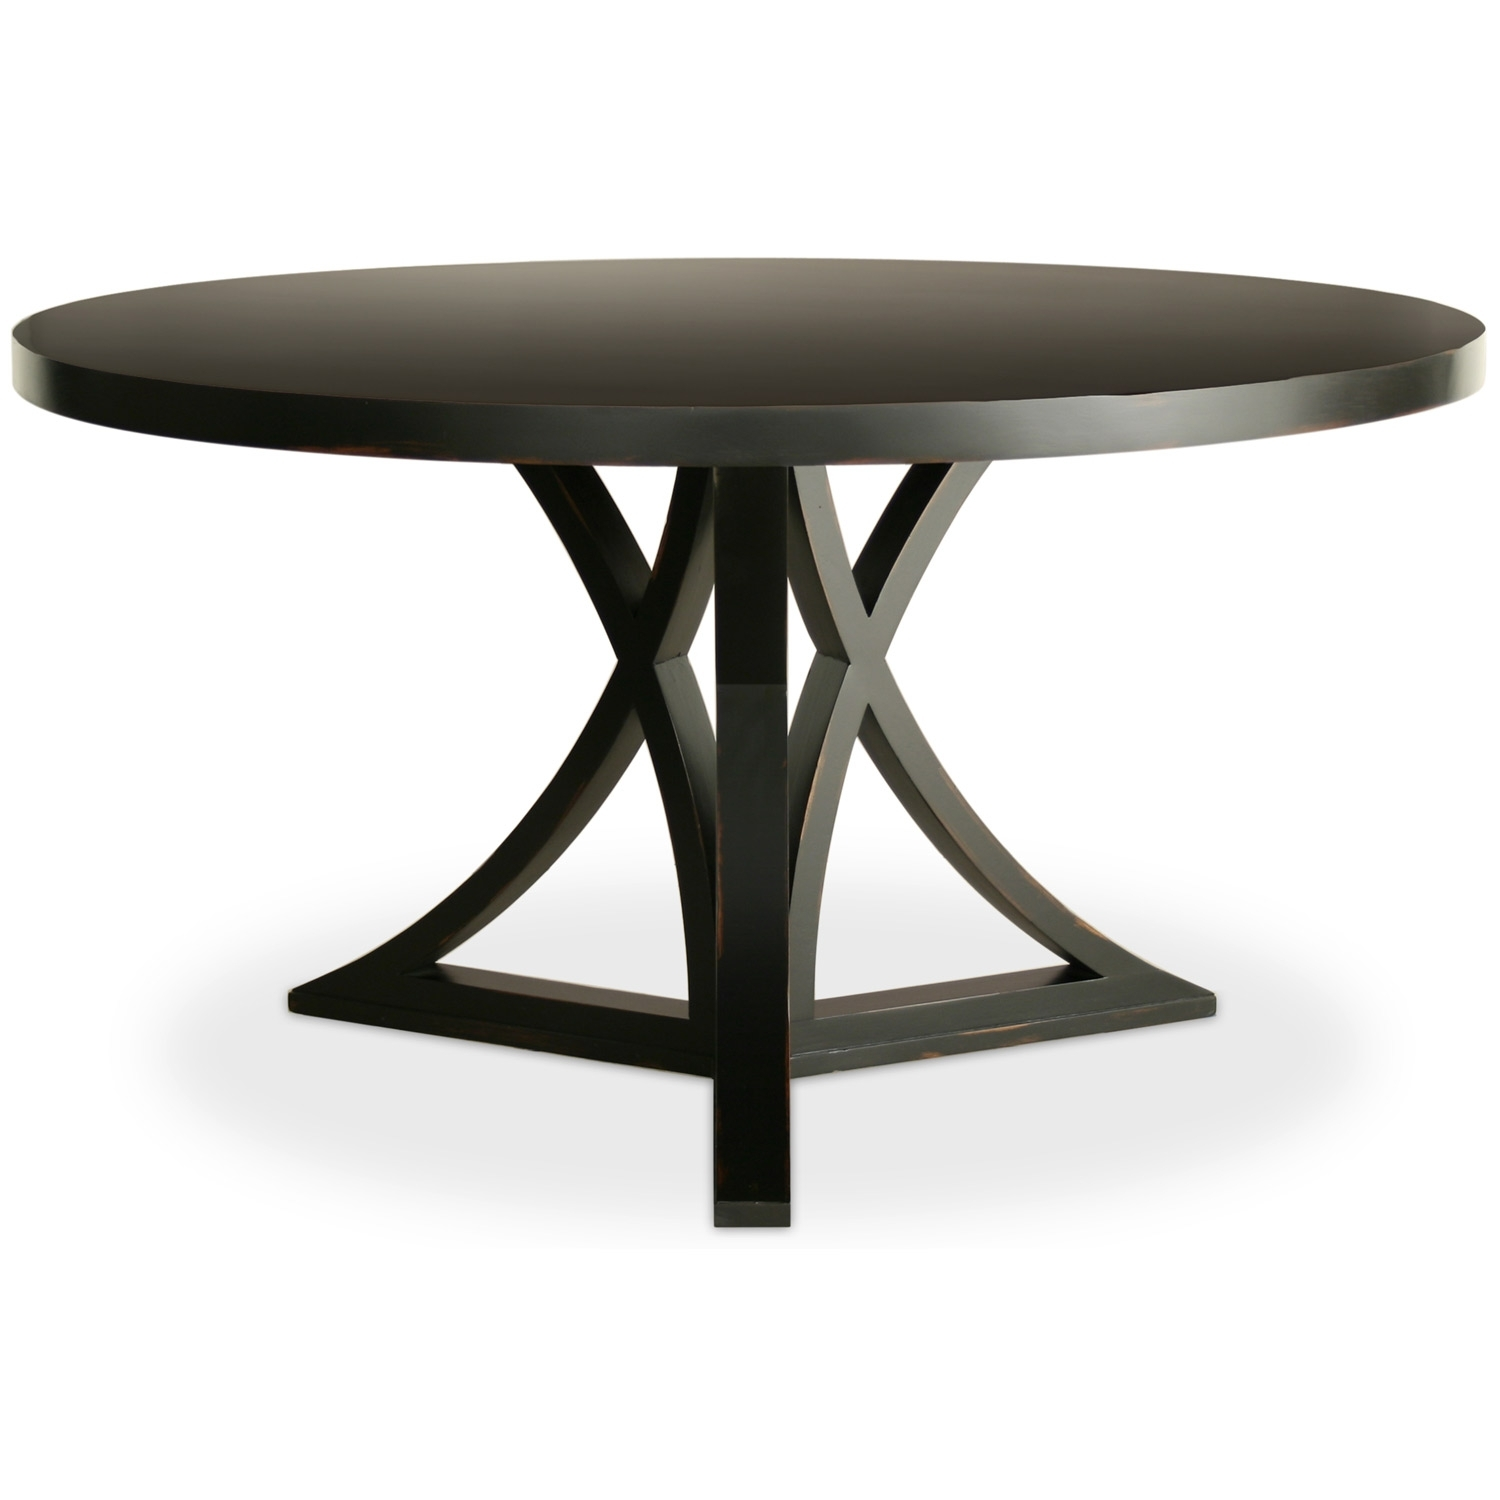 Dining Tables. Outstanding Black Round Dining Table: Black Round With Regard To Newest Caira Black Round Dining Tables (Photo 1 of 20)